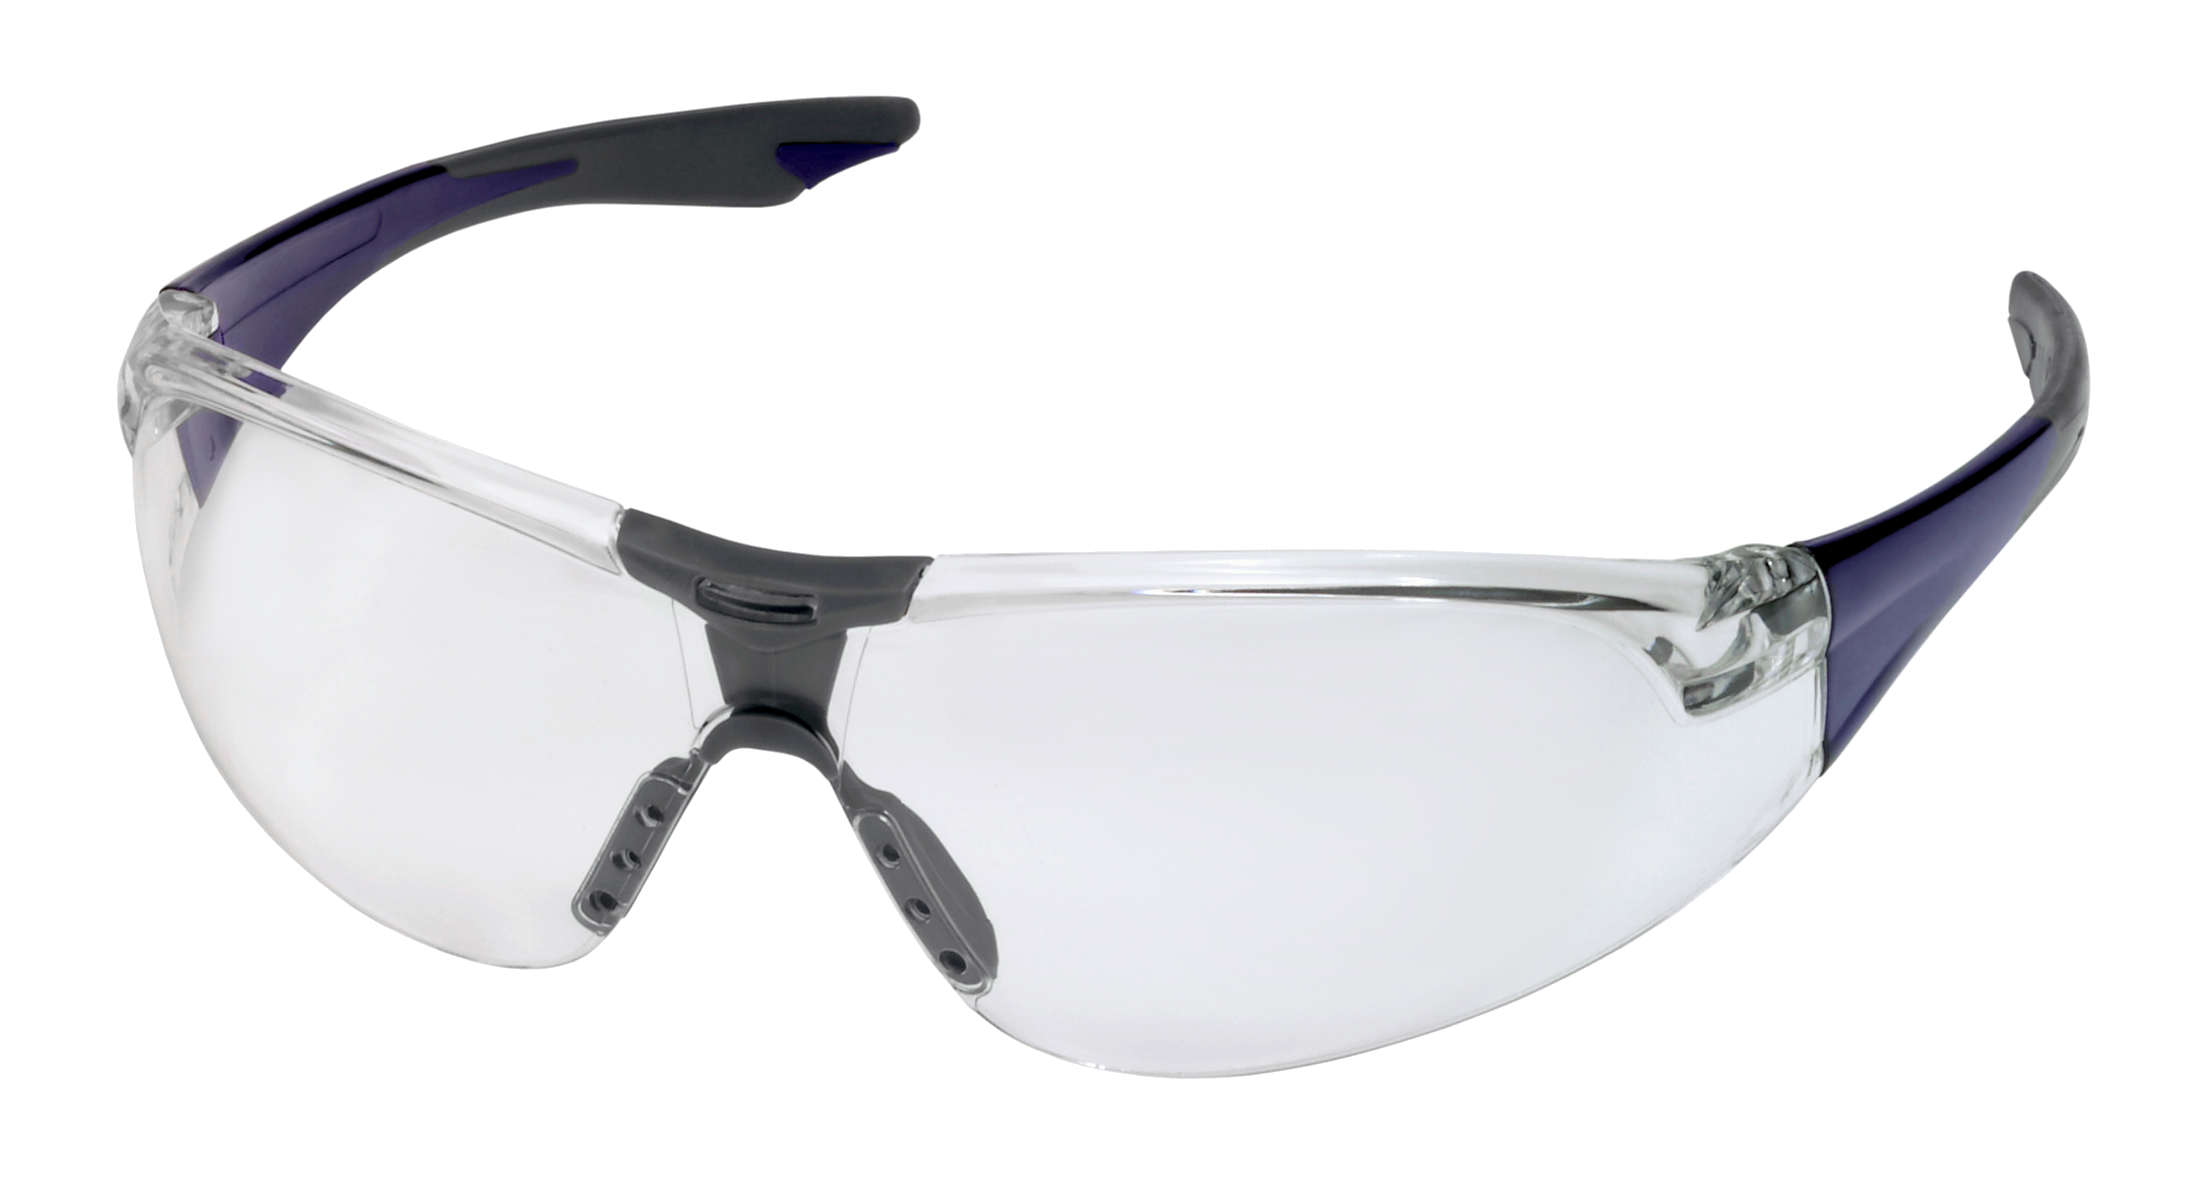 Safety glasses png. Sport sunglasses image